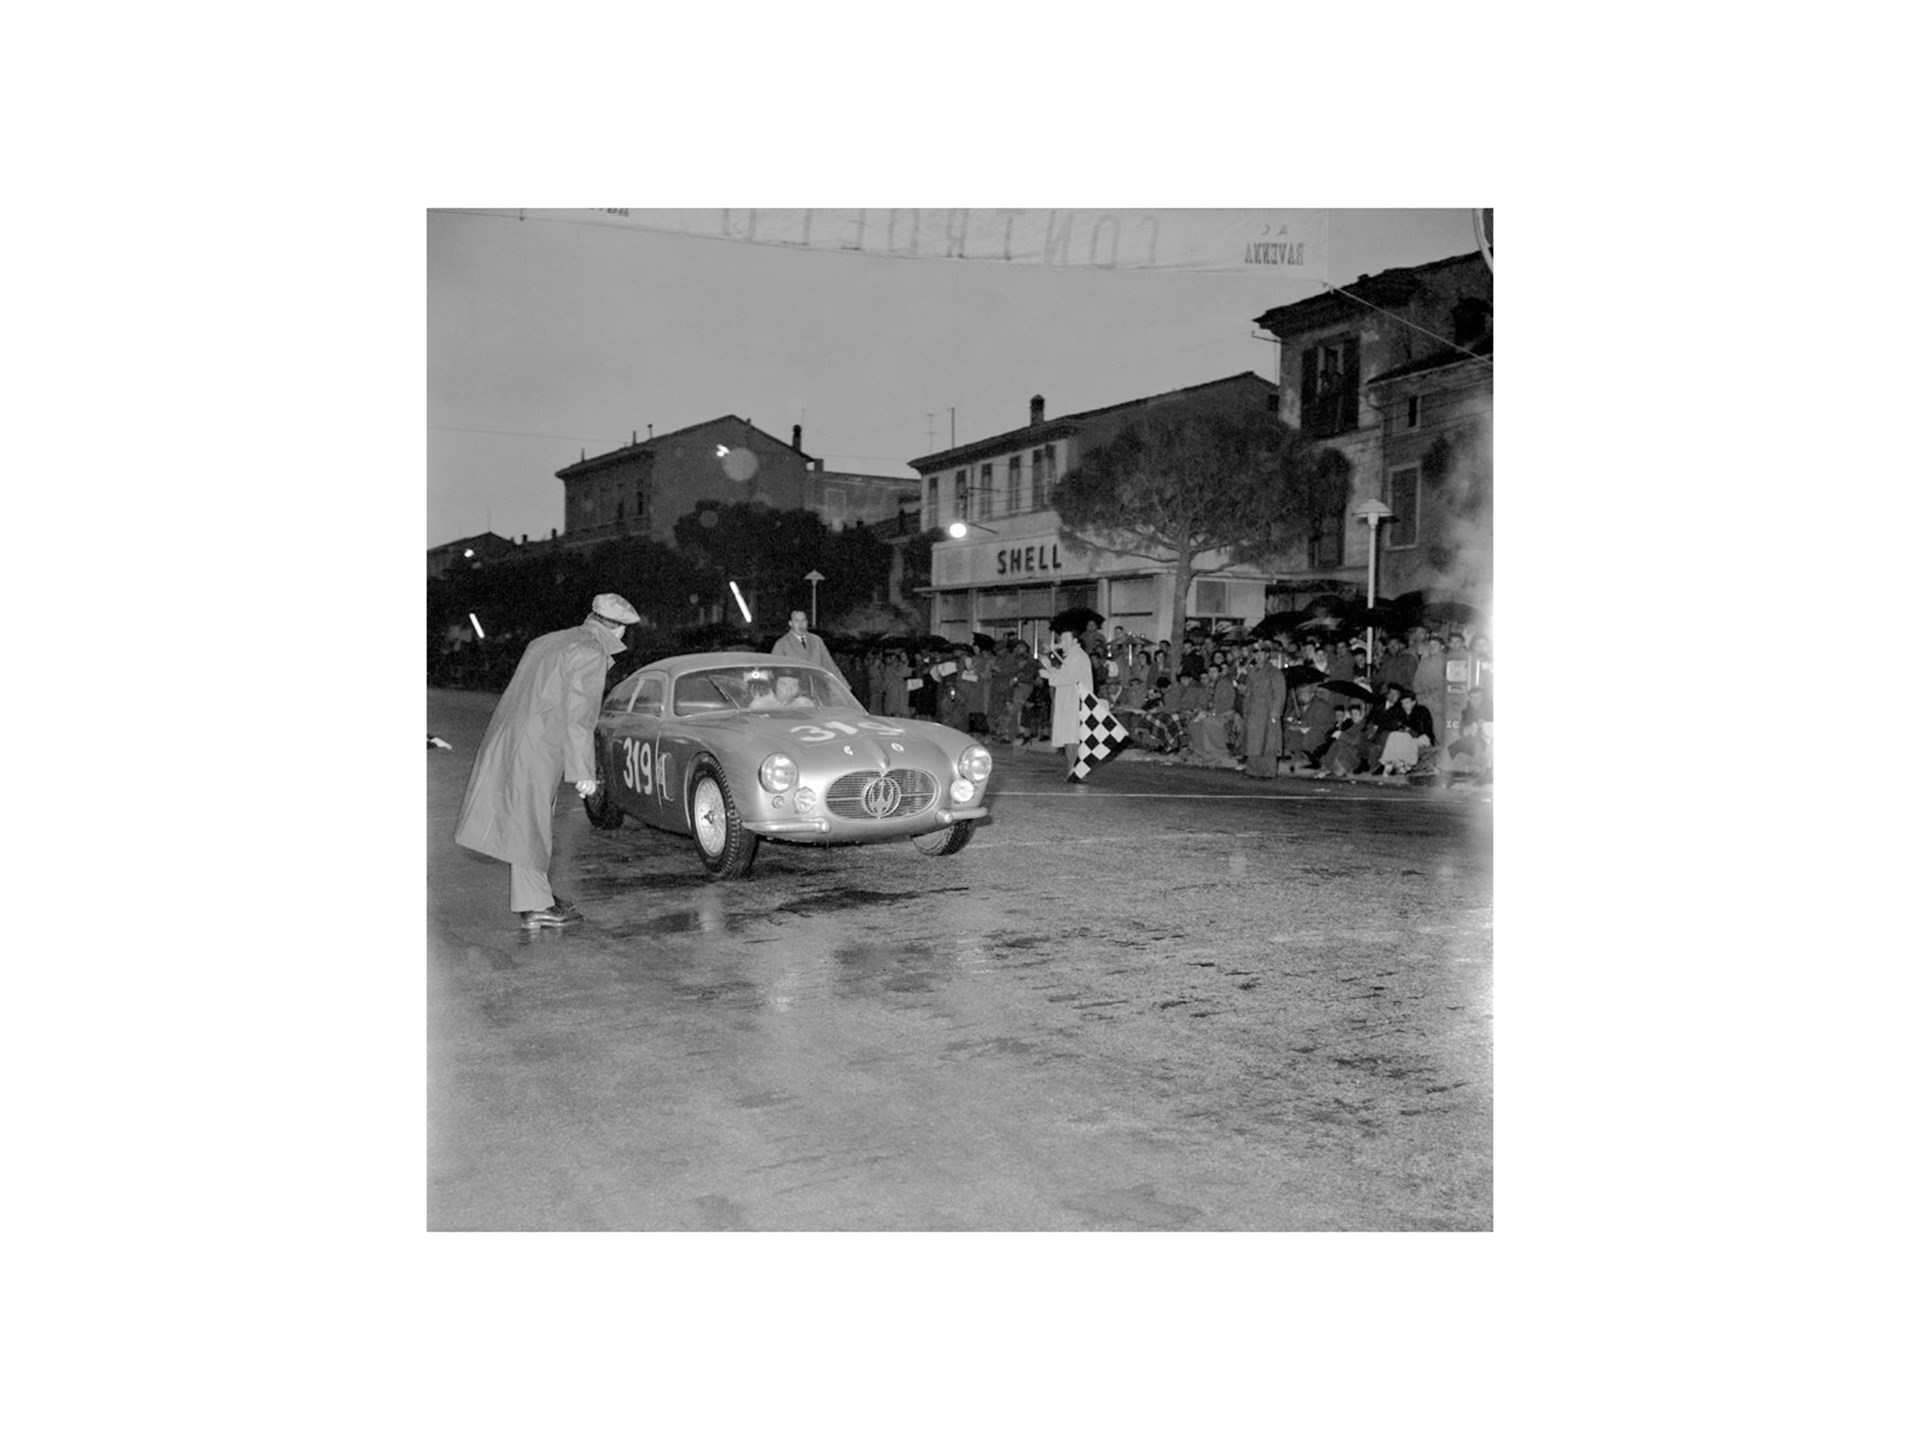 Chassis no. 2124 reaches the checkpoint at Ravenna during the 1956 Mille Miglia.